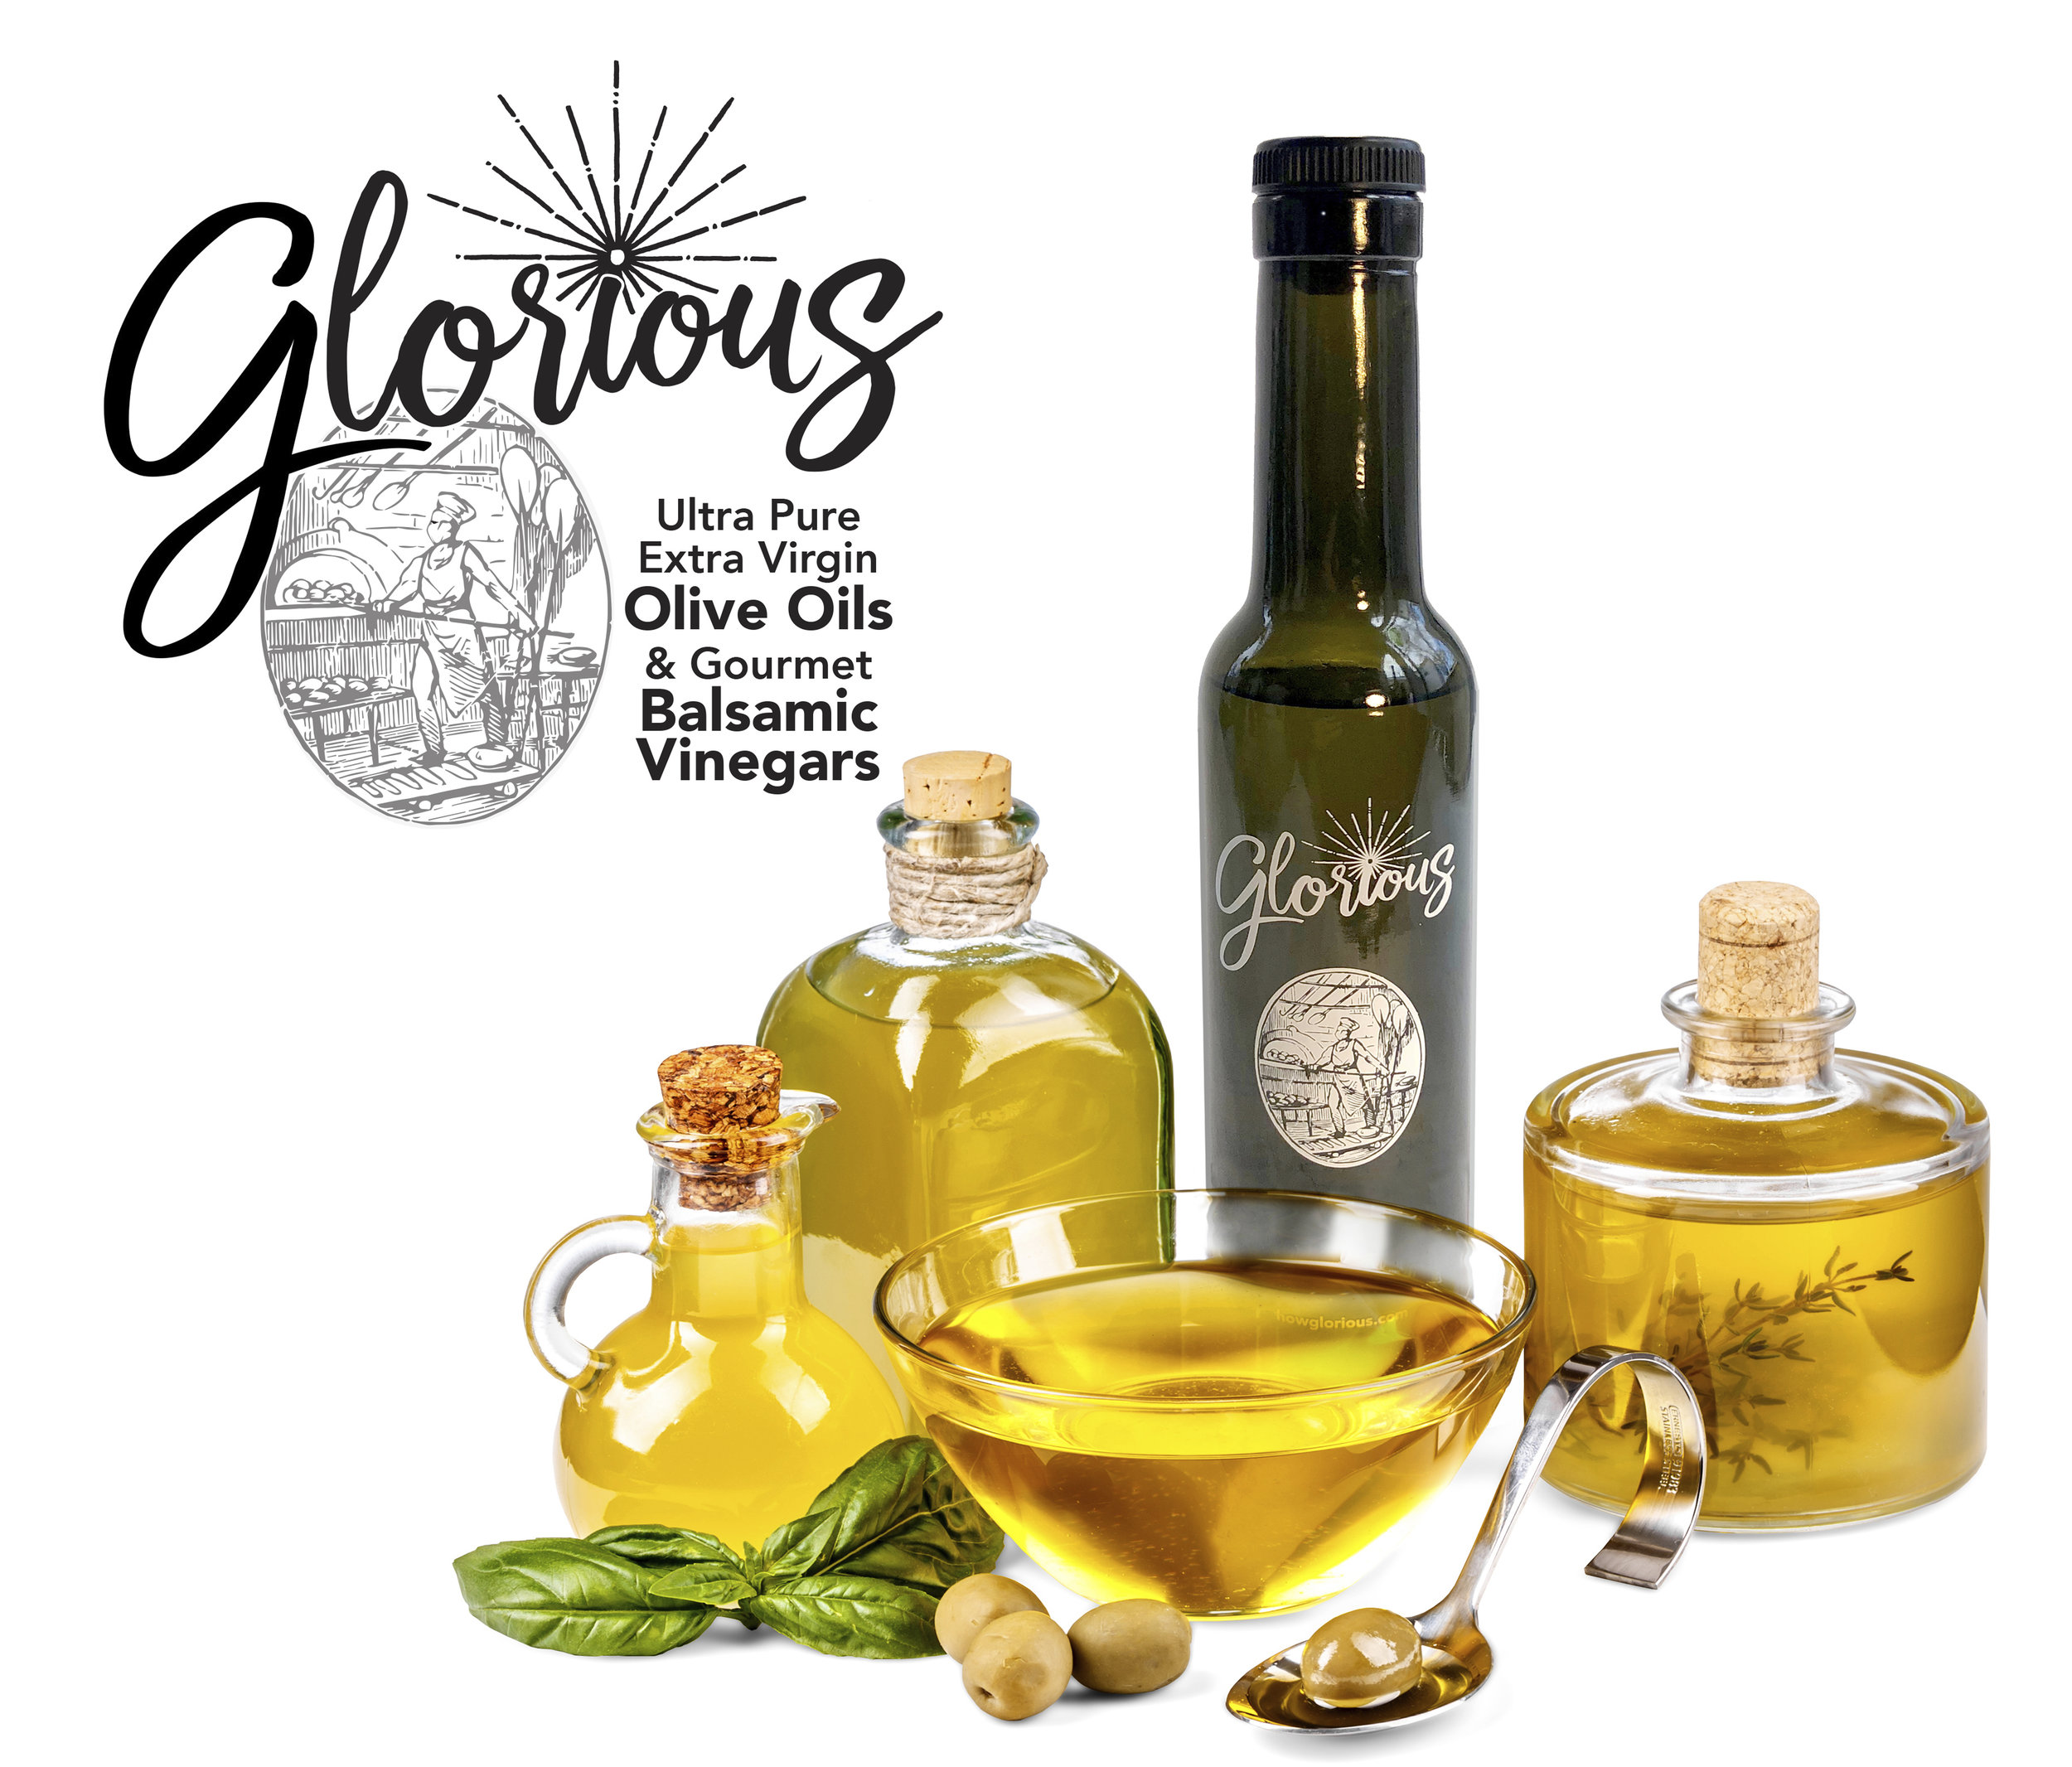 Glorious extra-virgin olive oils are among some of the purest in the industry. Stop by for a tasting!